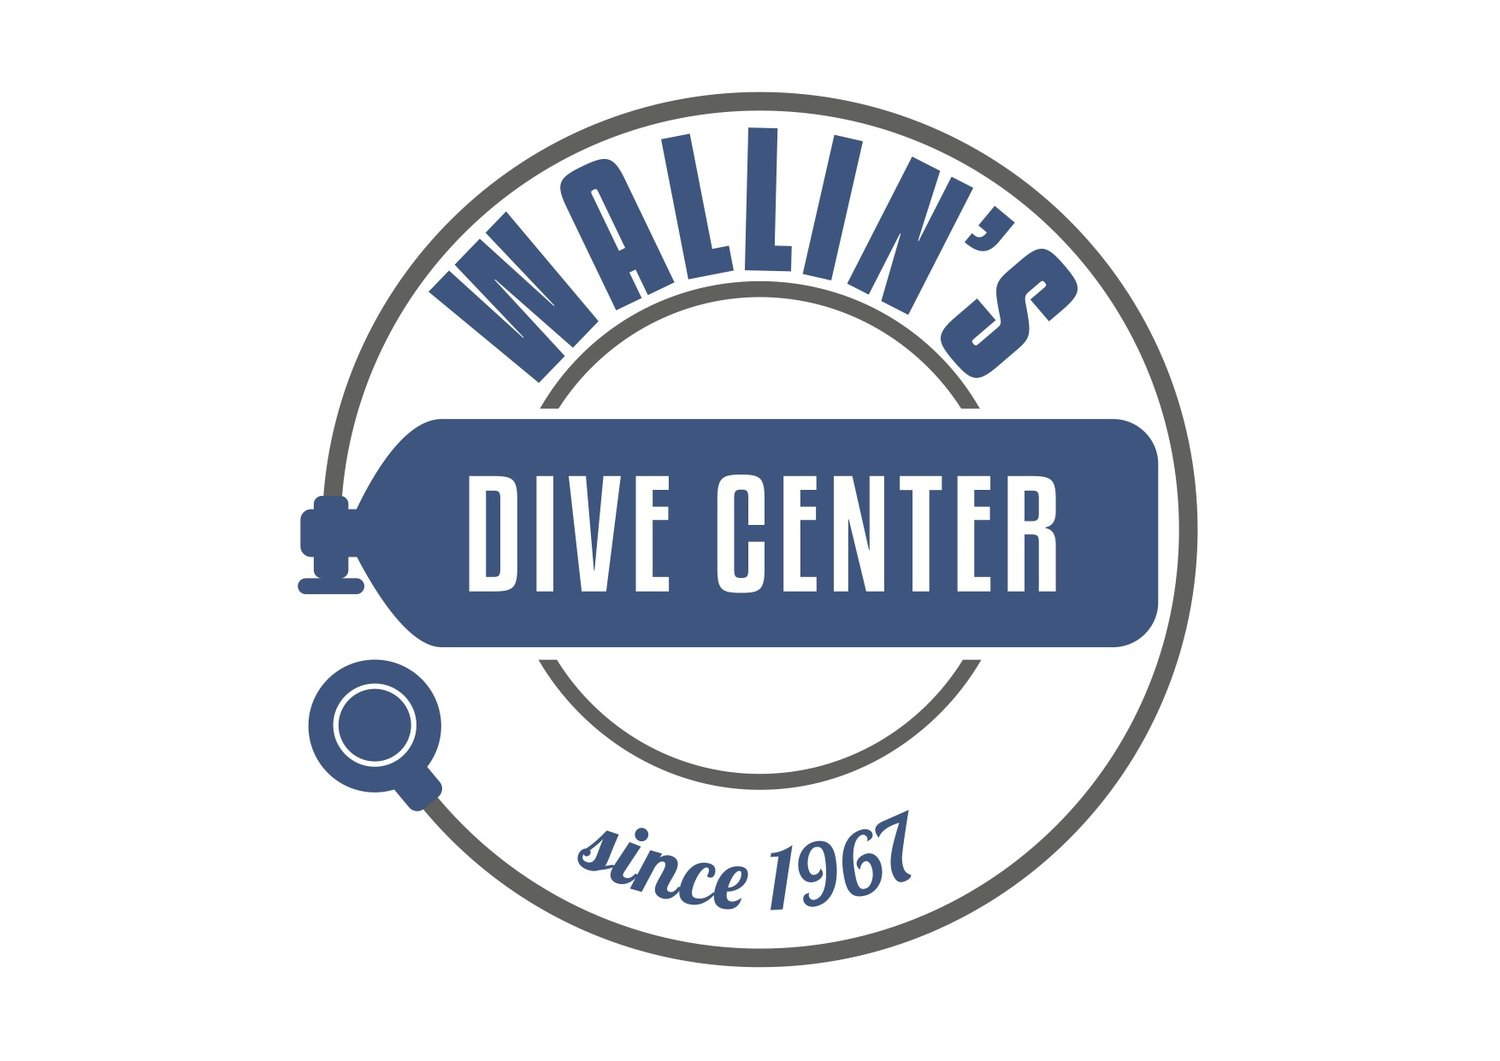 Wallins Dive Center